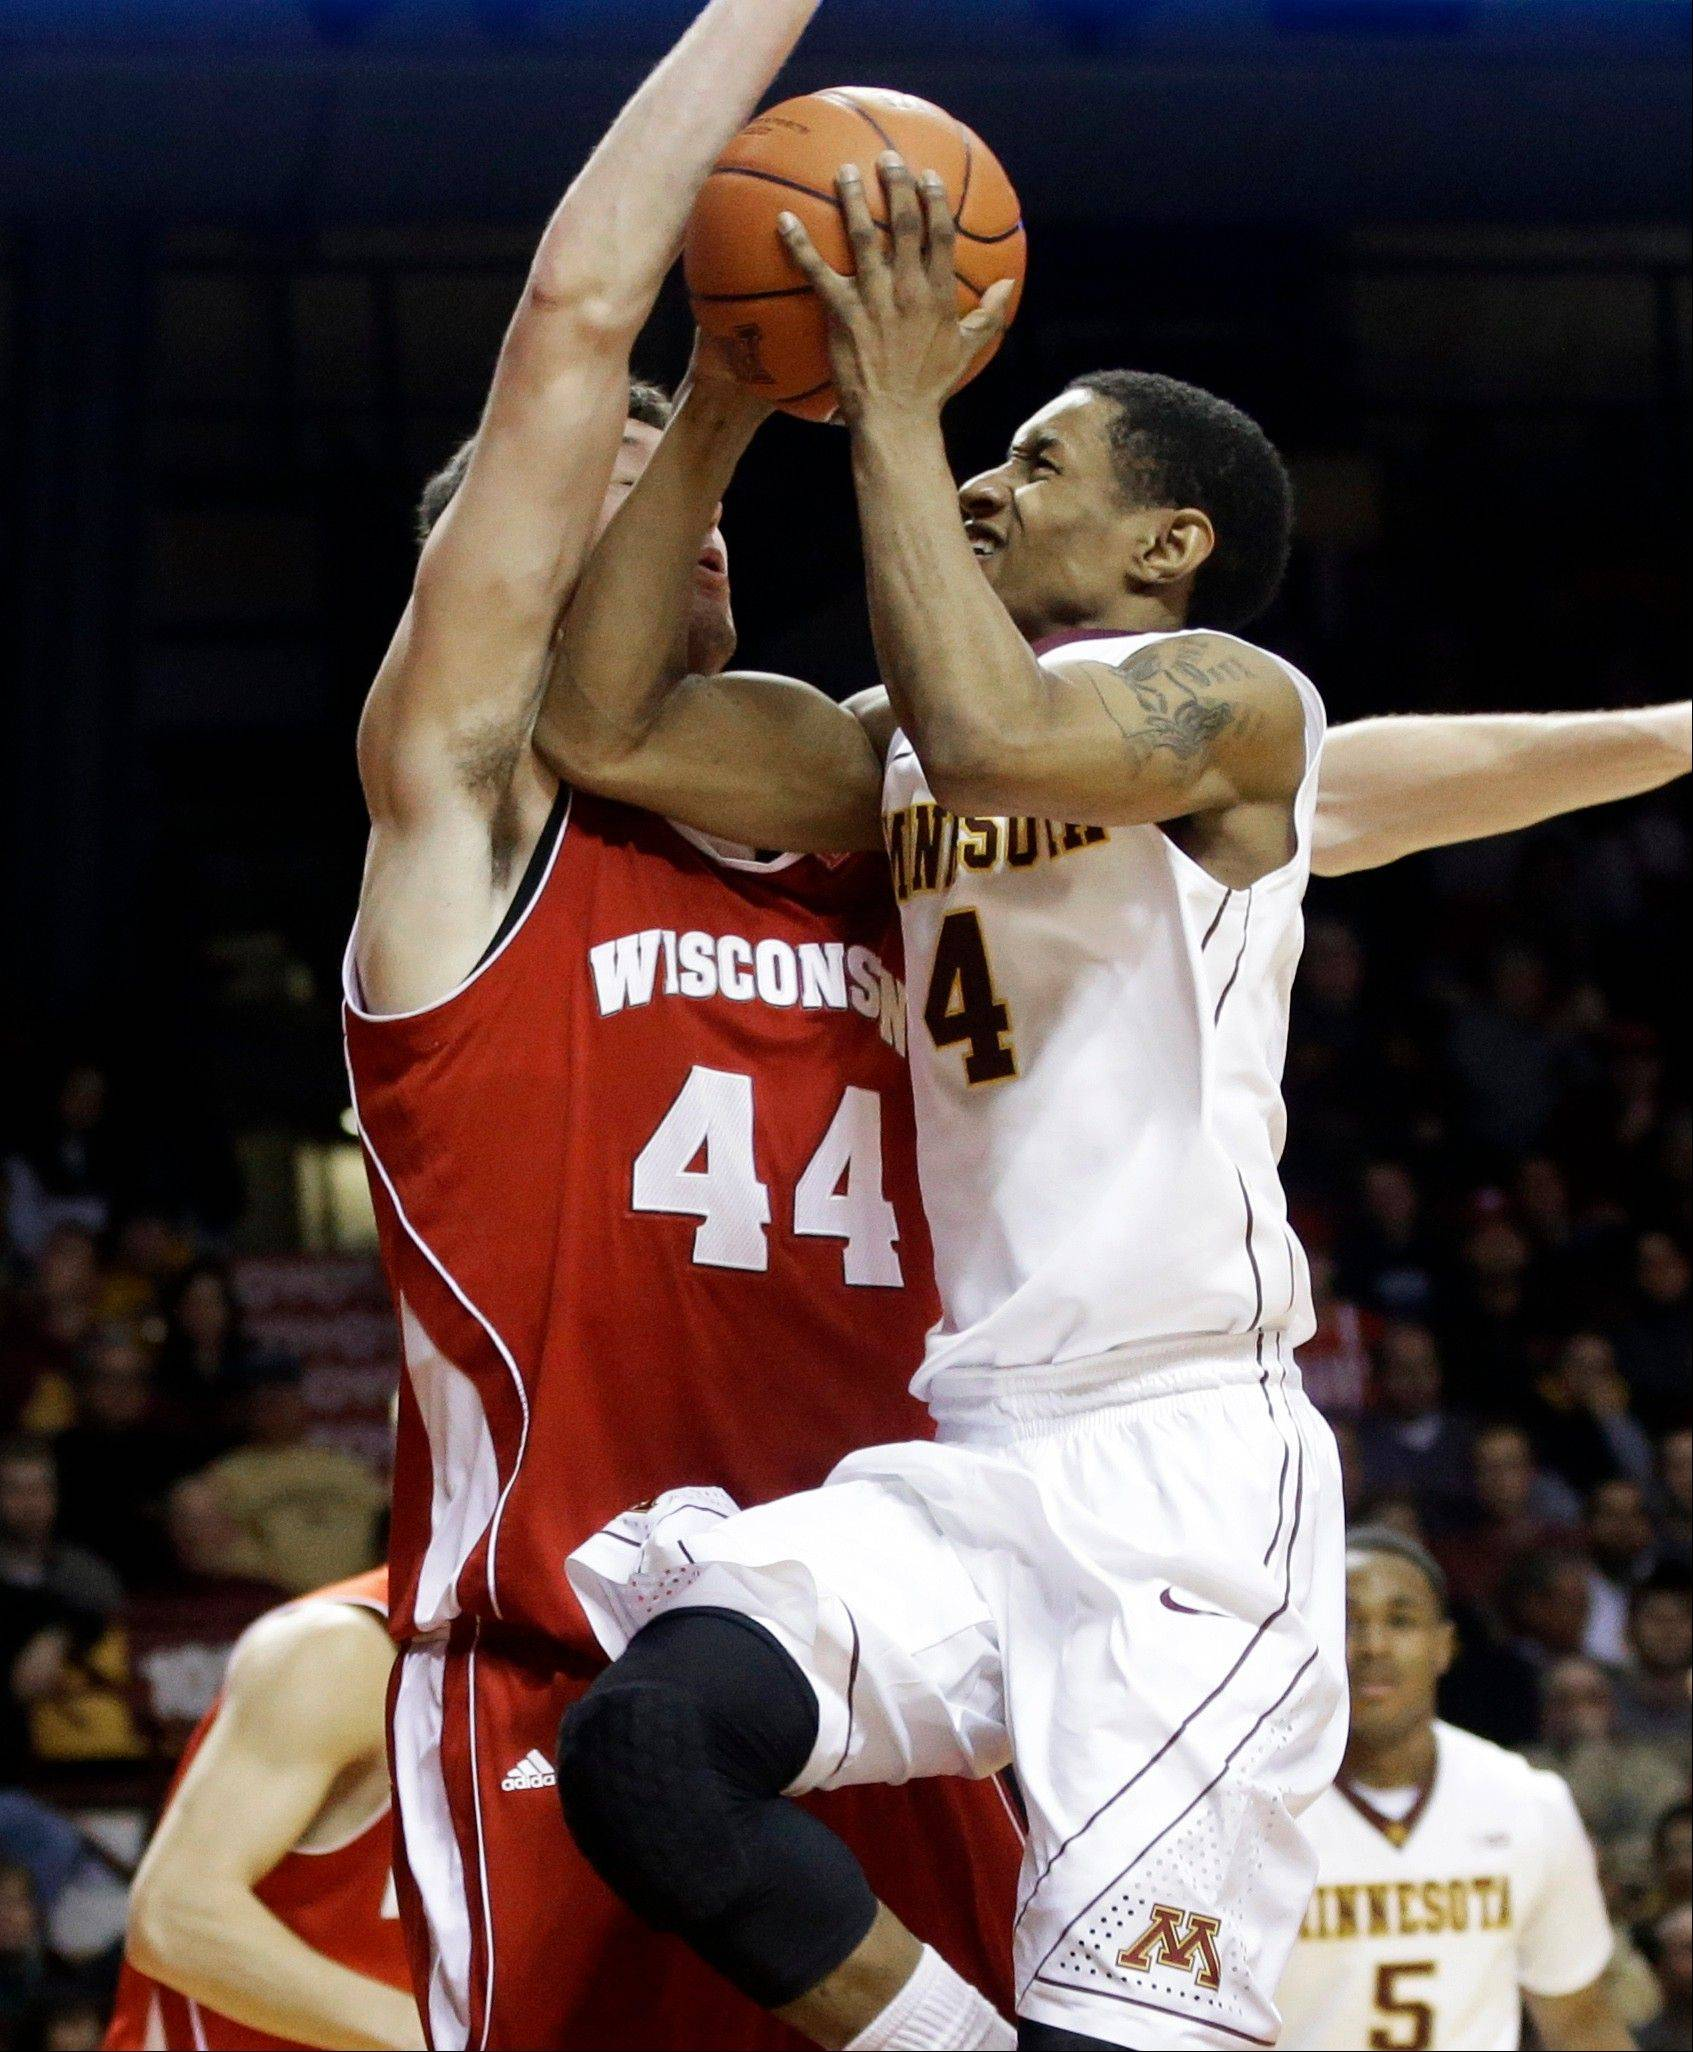 Minnesota's Deandre Mathieu, right, drives into Wisconsin's Frank Kaminsky, left, in the second half of an NCAA college basketball game, Wednesday, Jan. 22, 2014, in Minneapolis. Mathieu and Maurice Walker each scored 18 points to lead Minnesota in their 81-68 win.